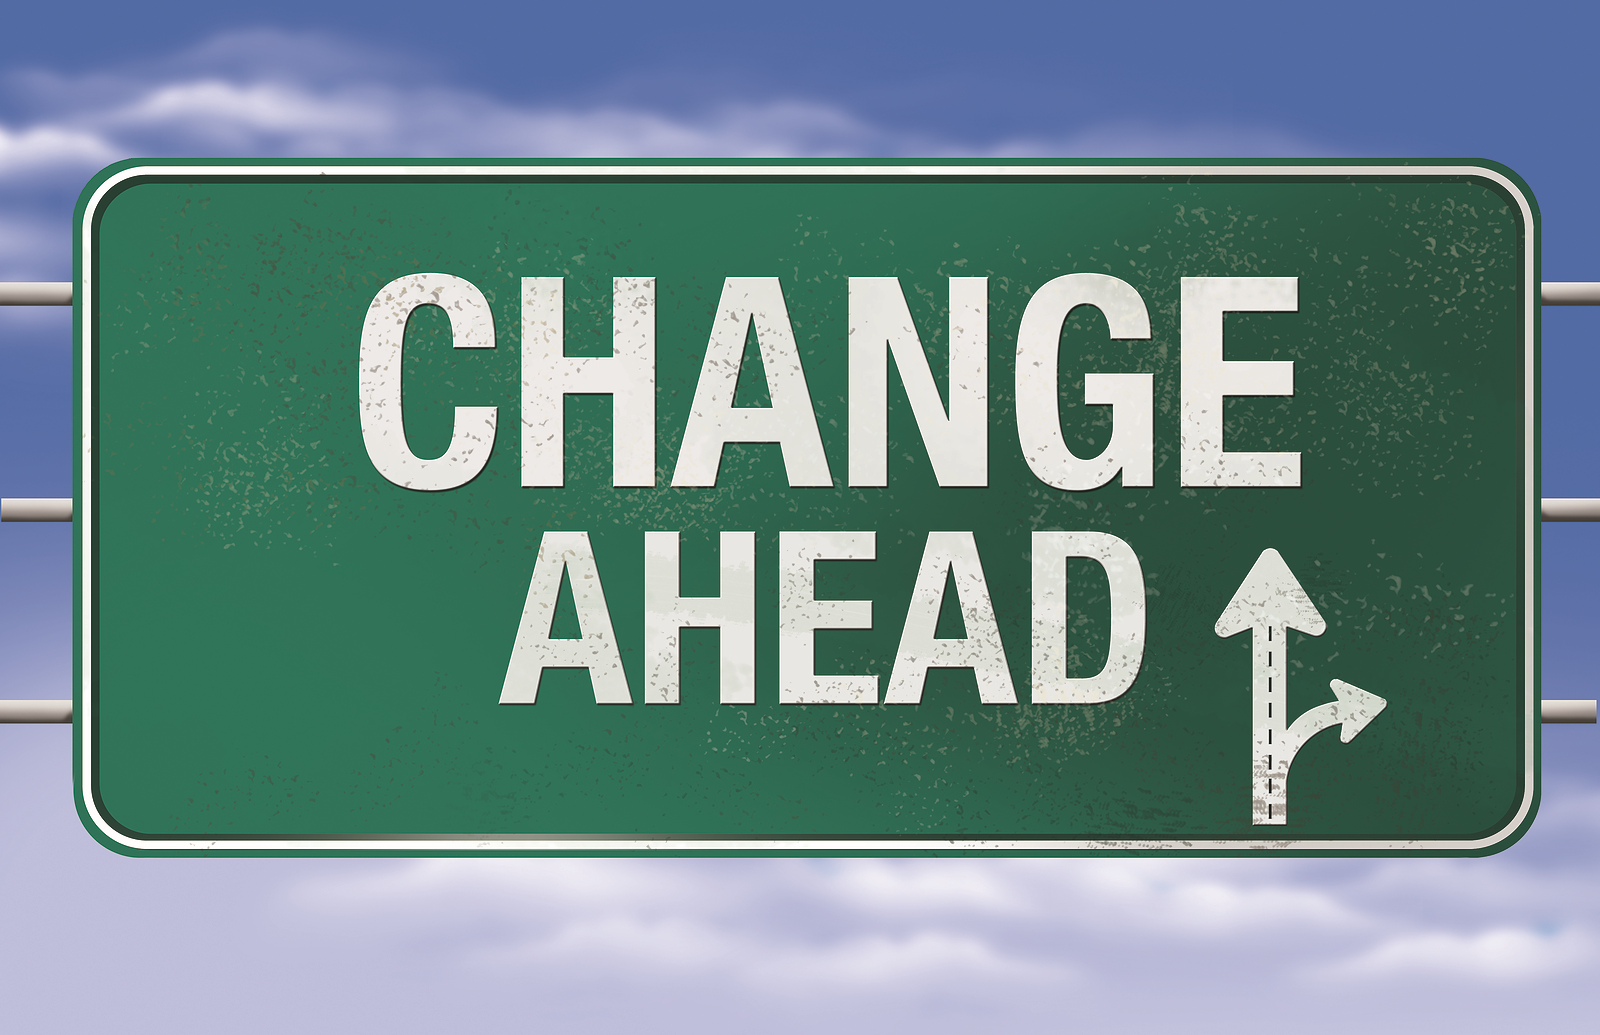 Change Ahead - Why We Don't Need Corporate Offices